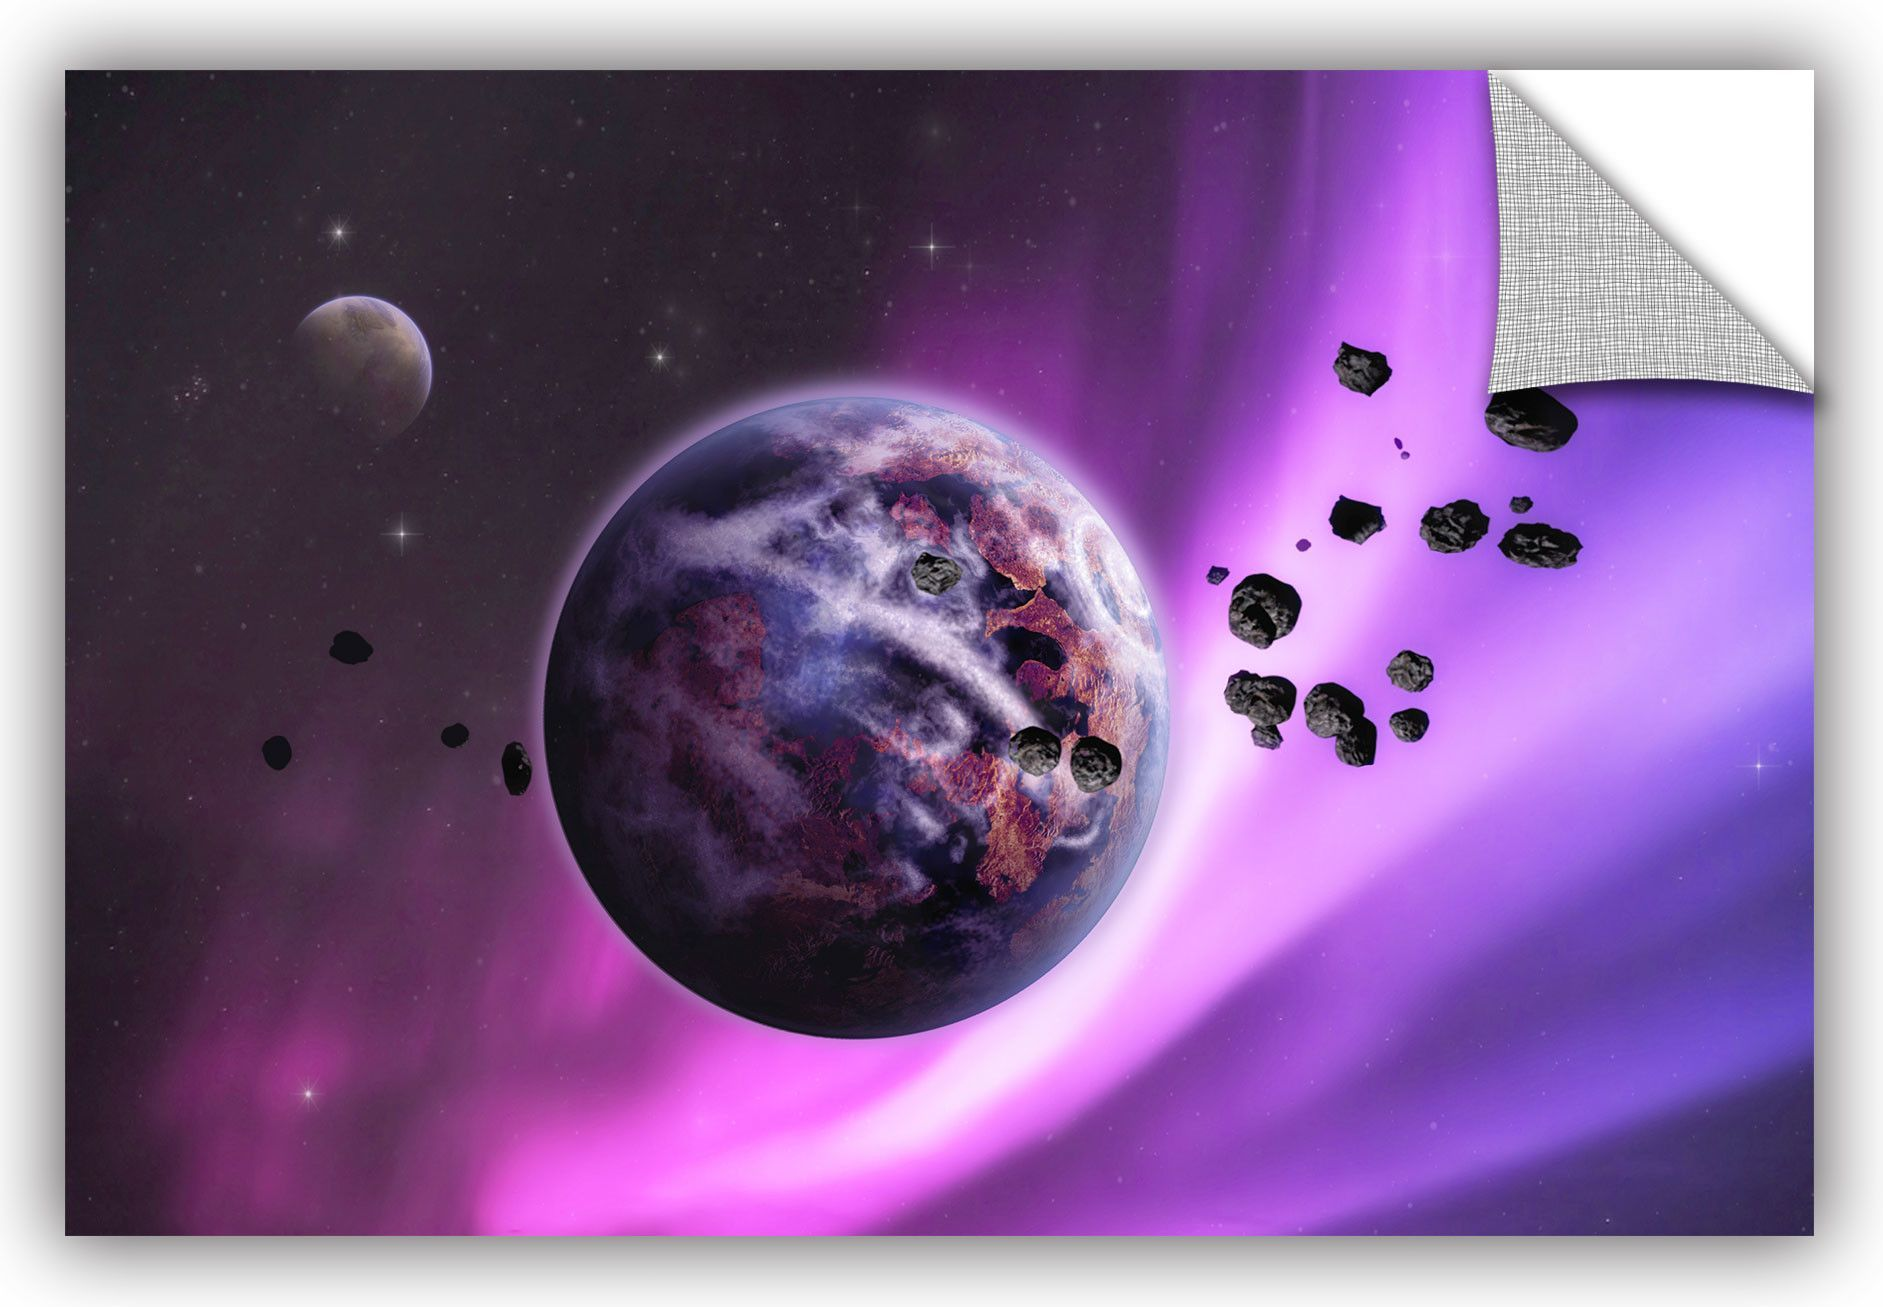 Deep Purple Space by Dragos Dumitrascu Photographic Print